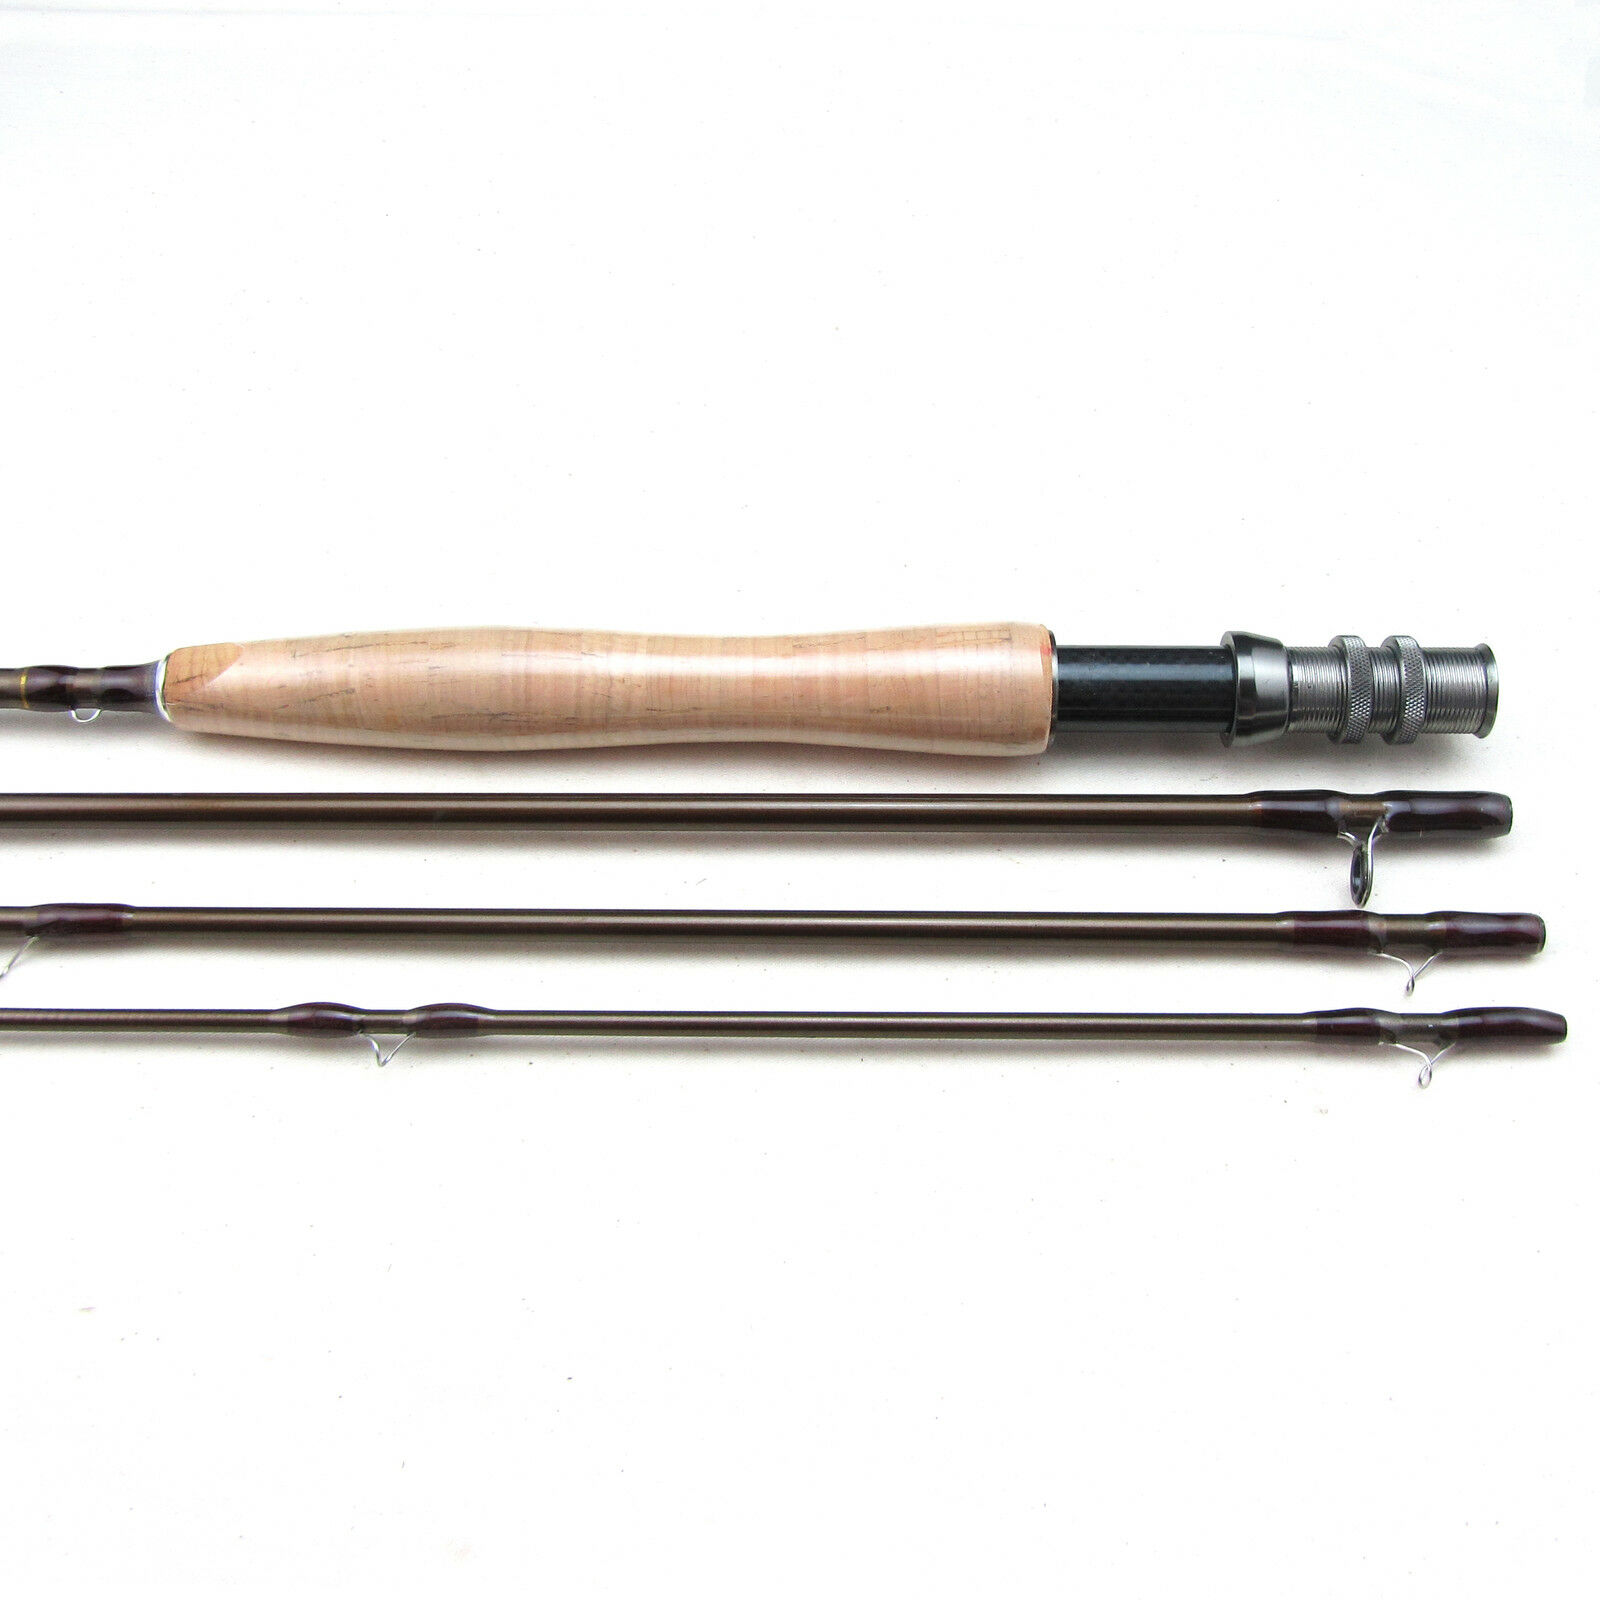 Carbon Fly Fishing Rod 4 Sections Length 9FT 5 6 Light Feel Medium-Fast Action